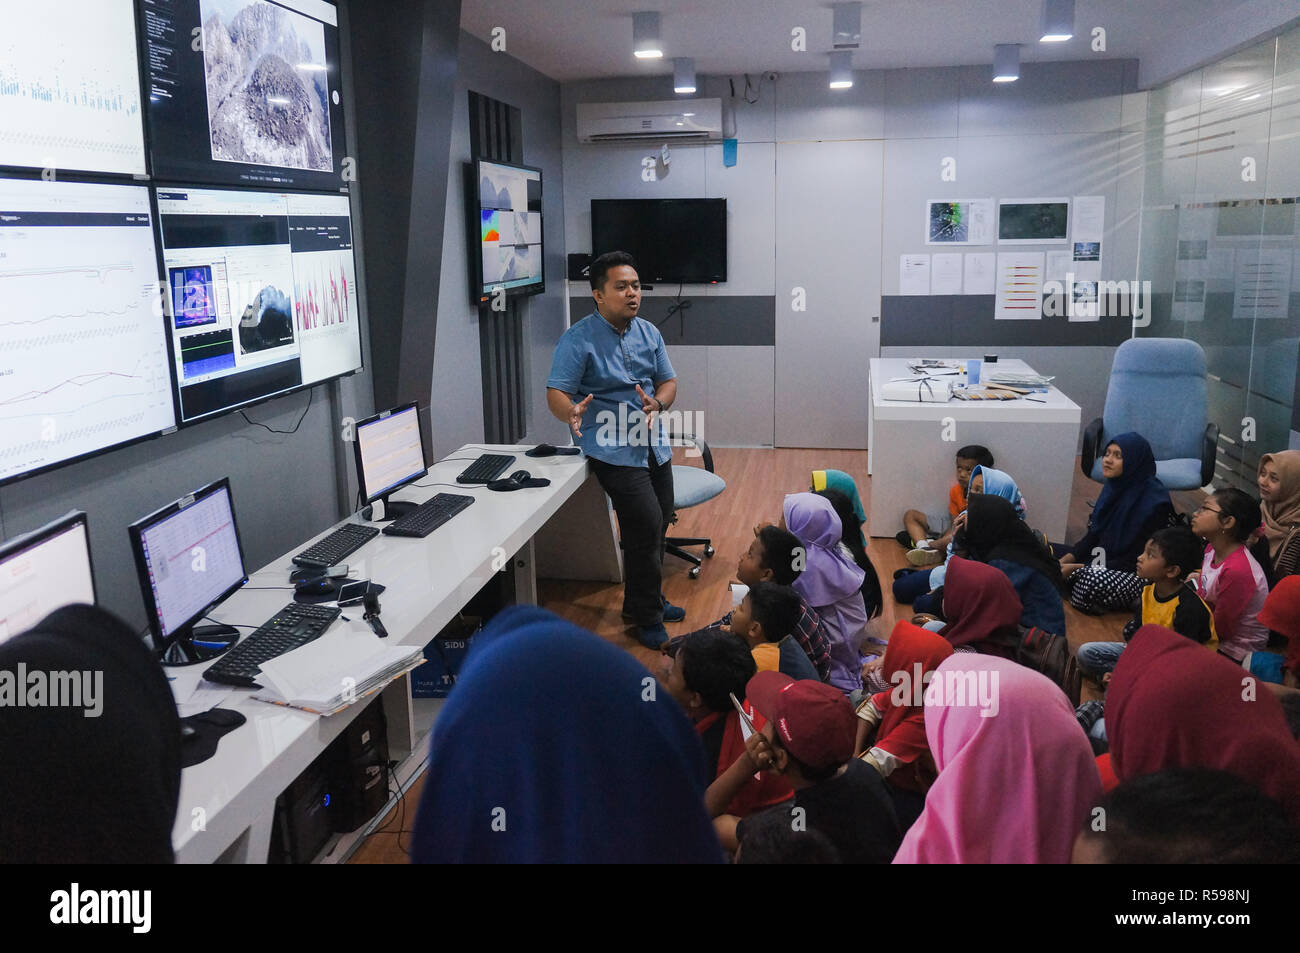 Yogyakarta, Indonesia. 30th Nov, 2018. A volcanologist was explaining the kids in Merapi mountain's observation room. This activity is a mitigation program for people that live under Merapi mountain. Credit: Galih Yoga Wicaksono/Alamy Live News - Stock Image